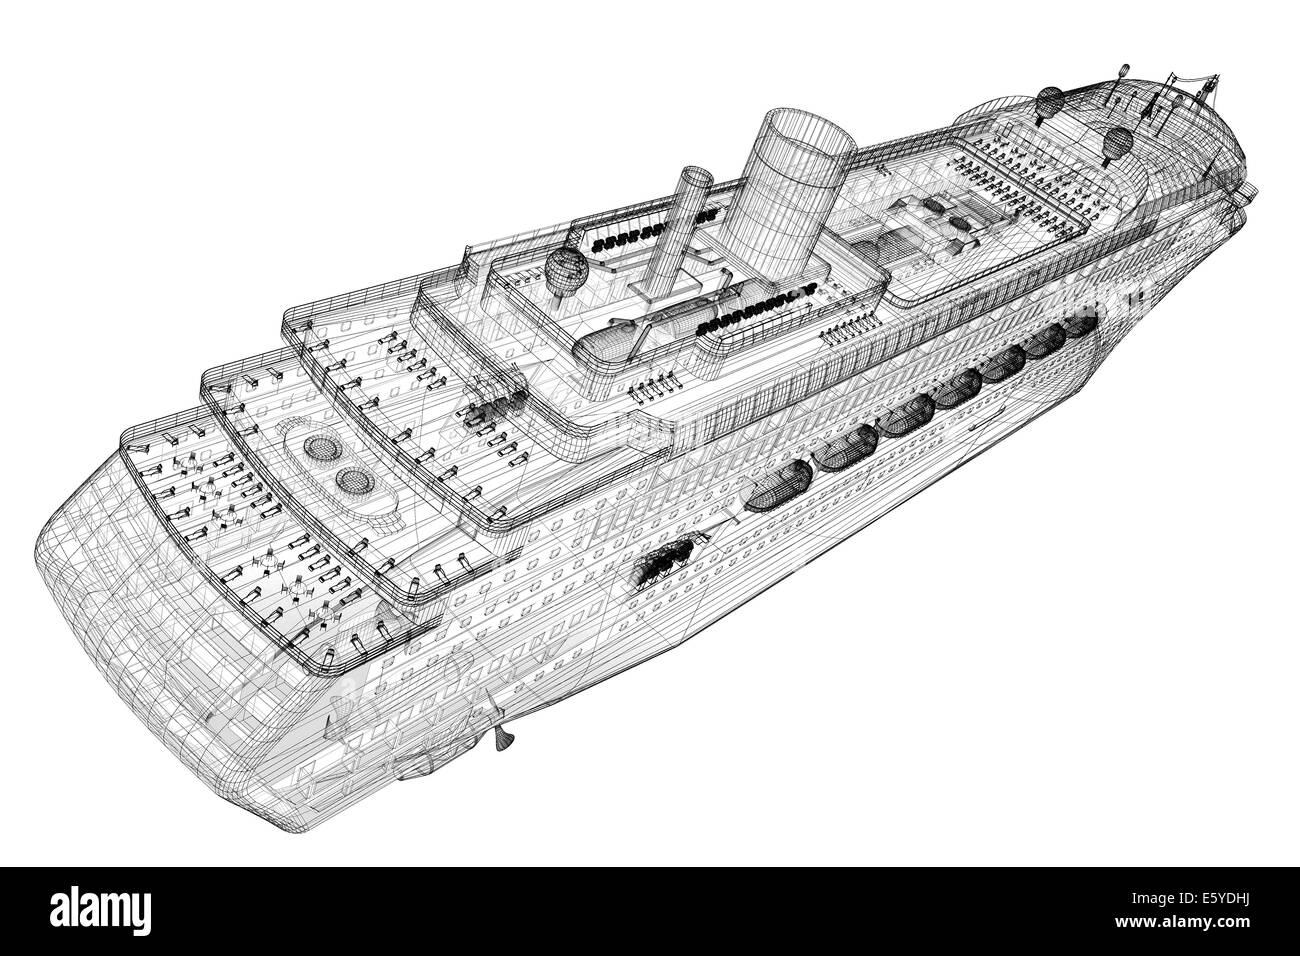 cruise liner, ship,  body structure, wire model - Stock Image